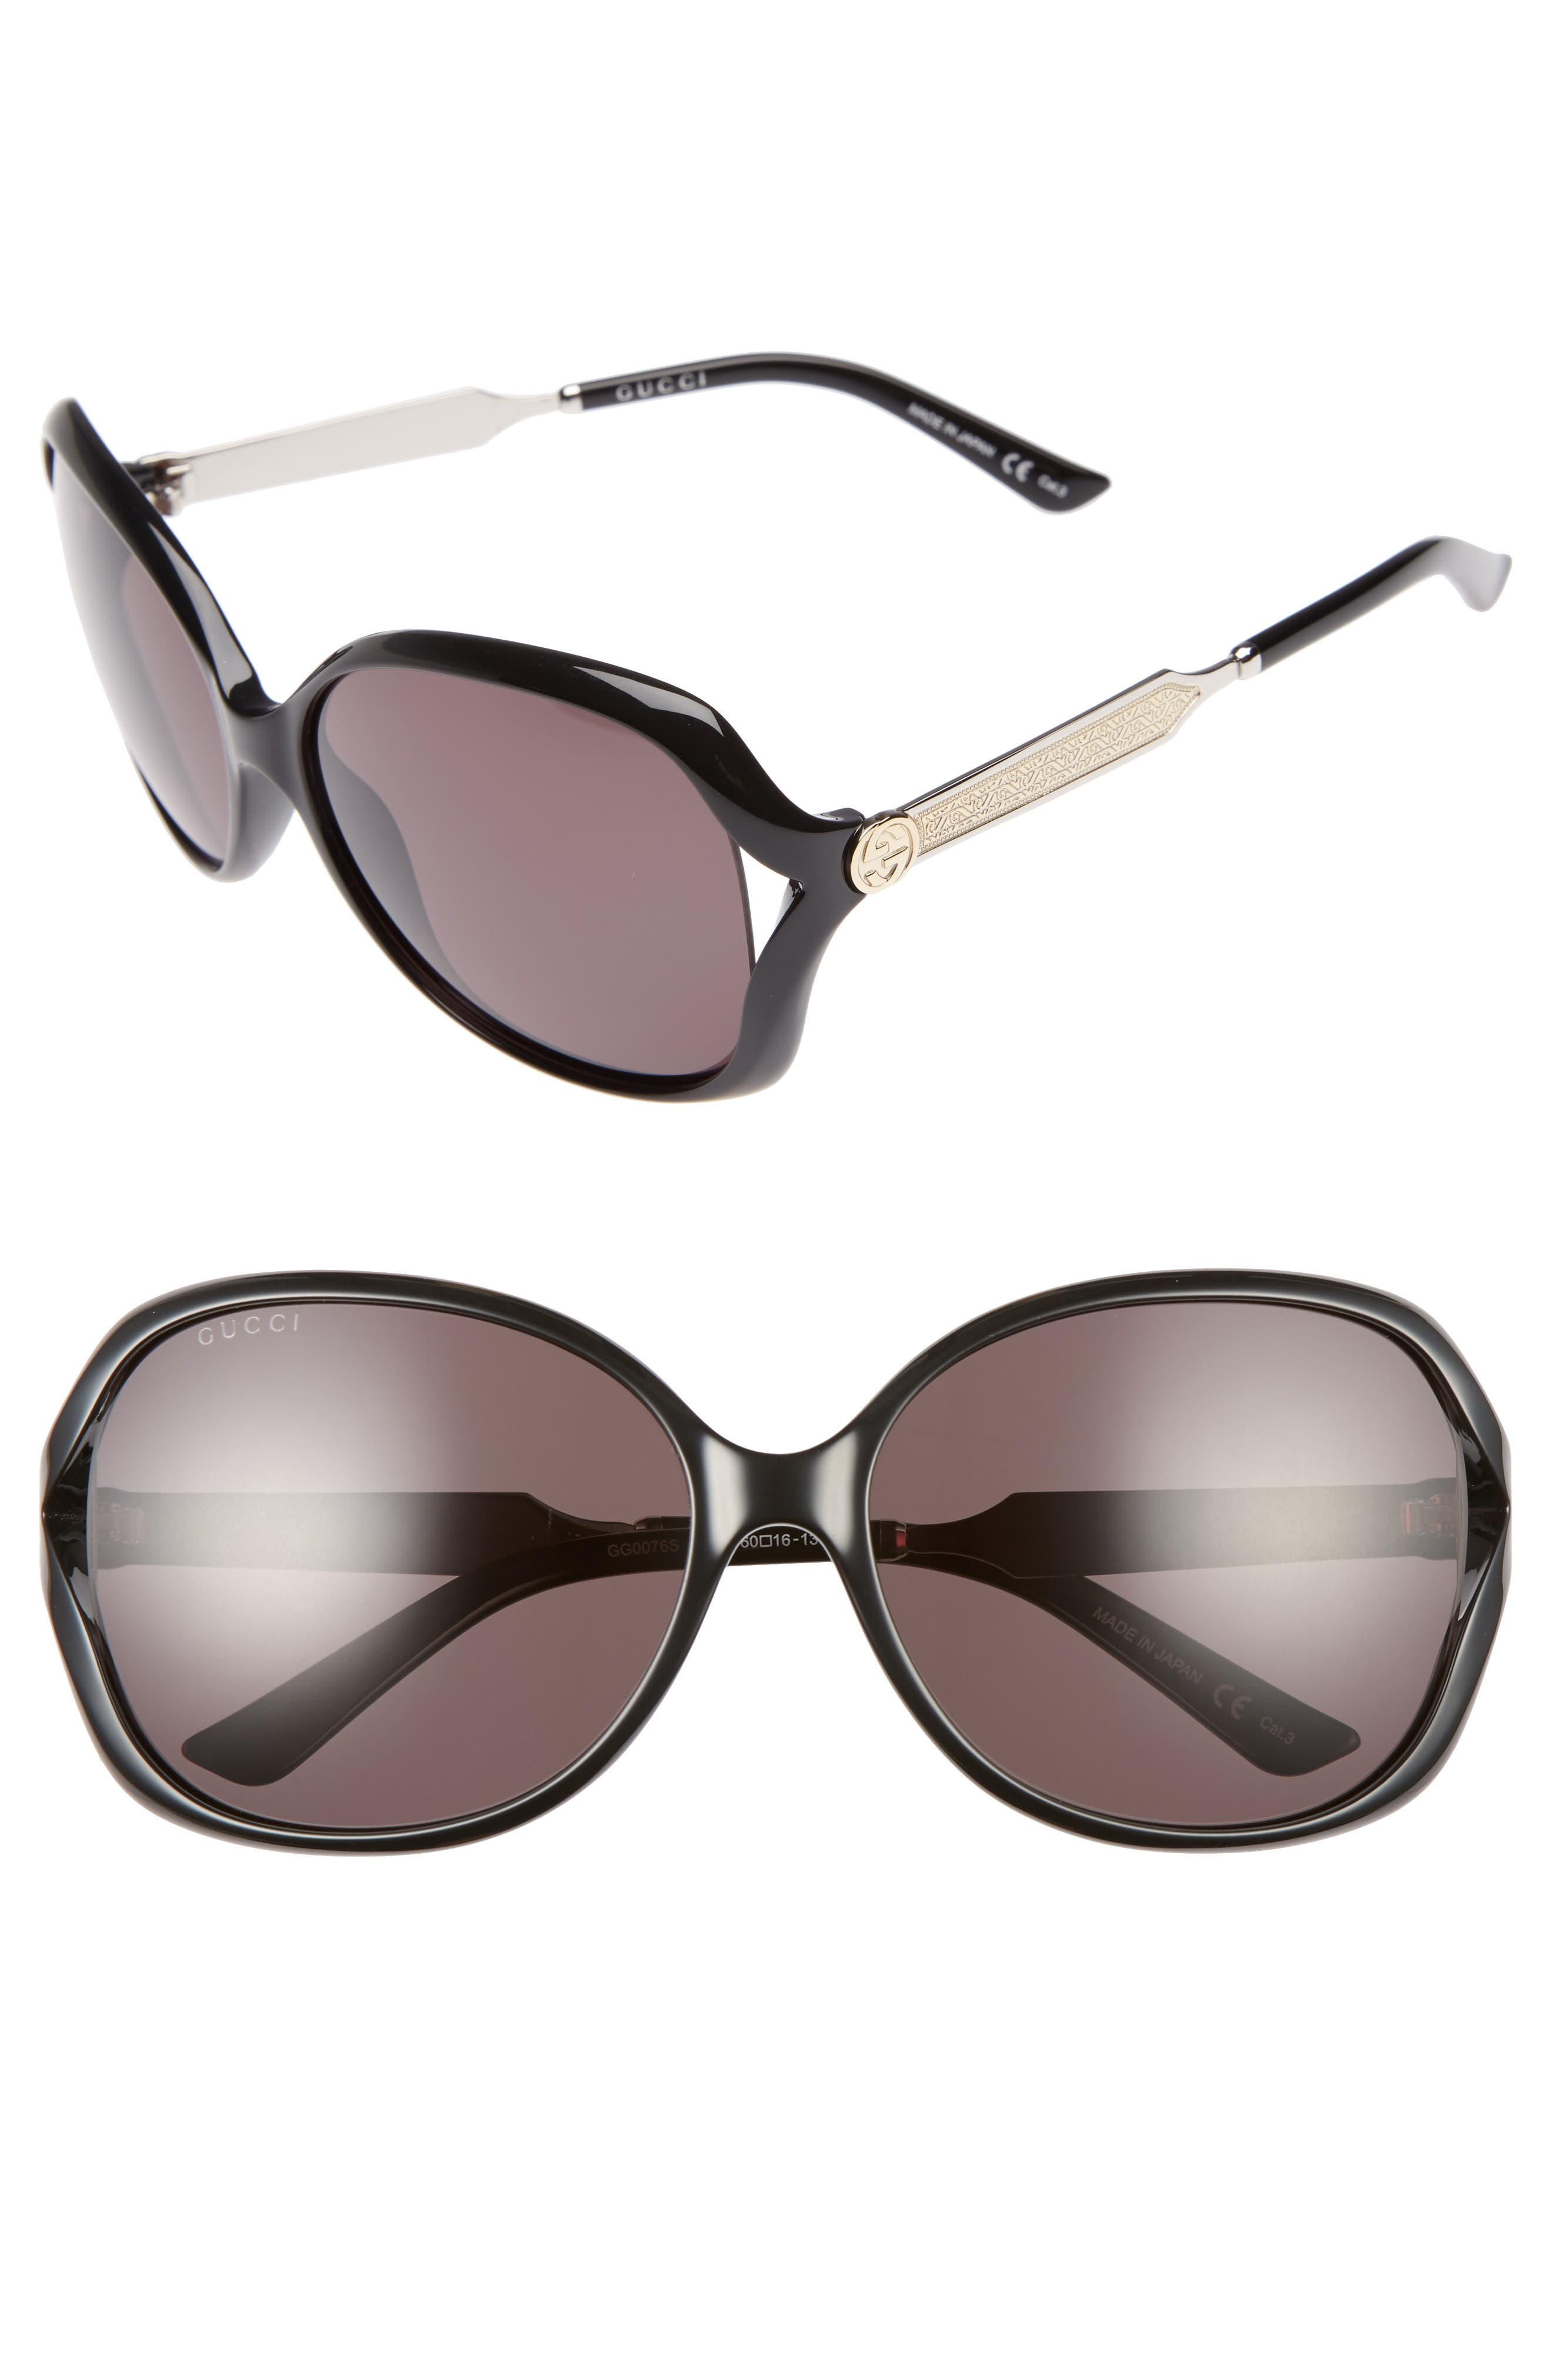 60mm Open Temple Oval Sunglasses,                             Main thumbnail 1, color,                             BLACK/ GREY